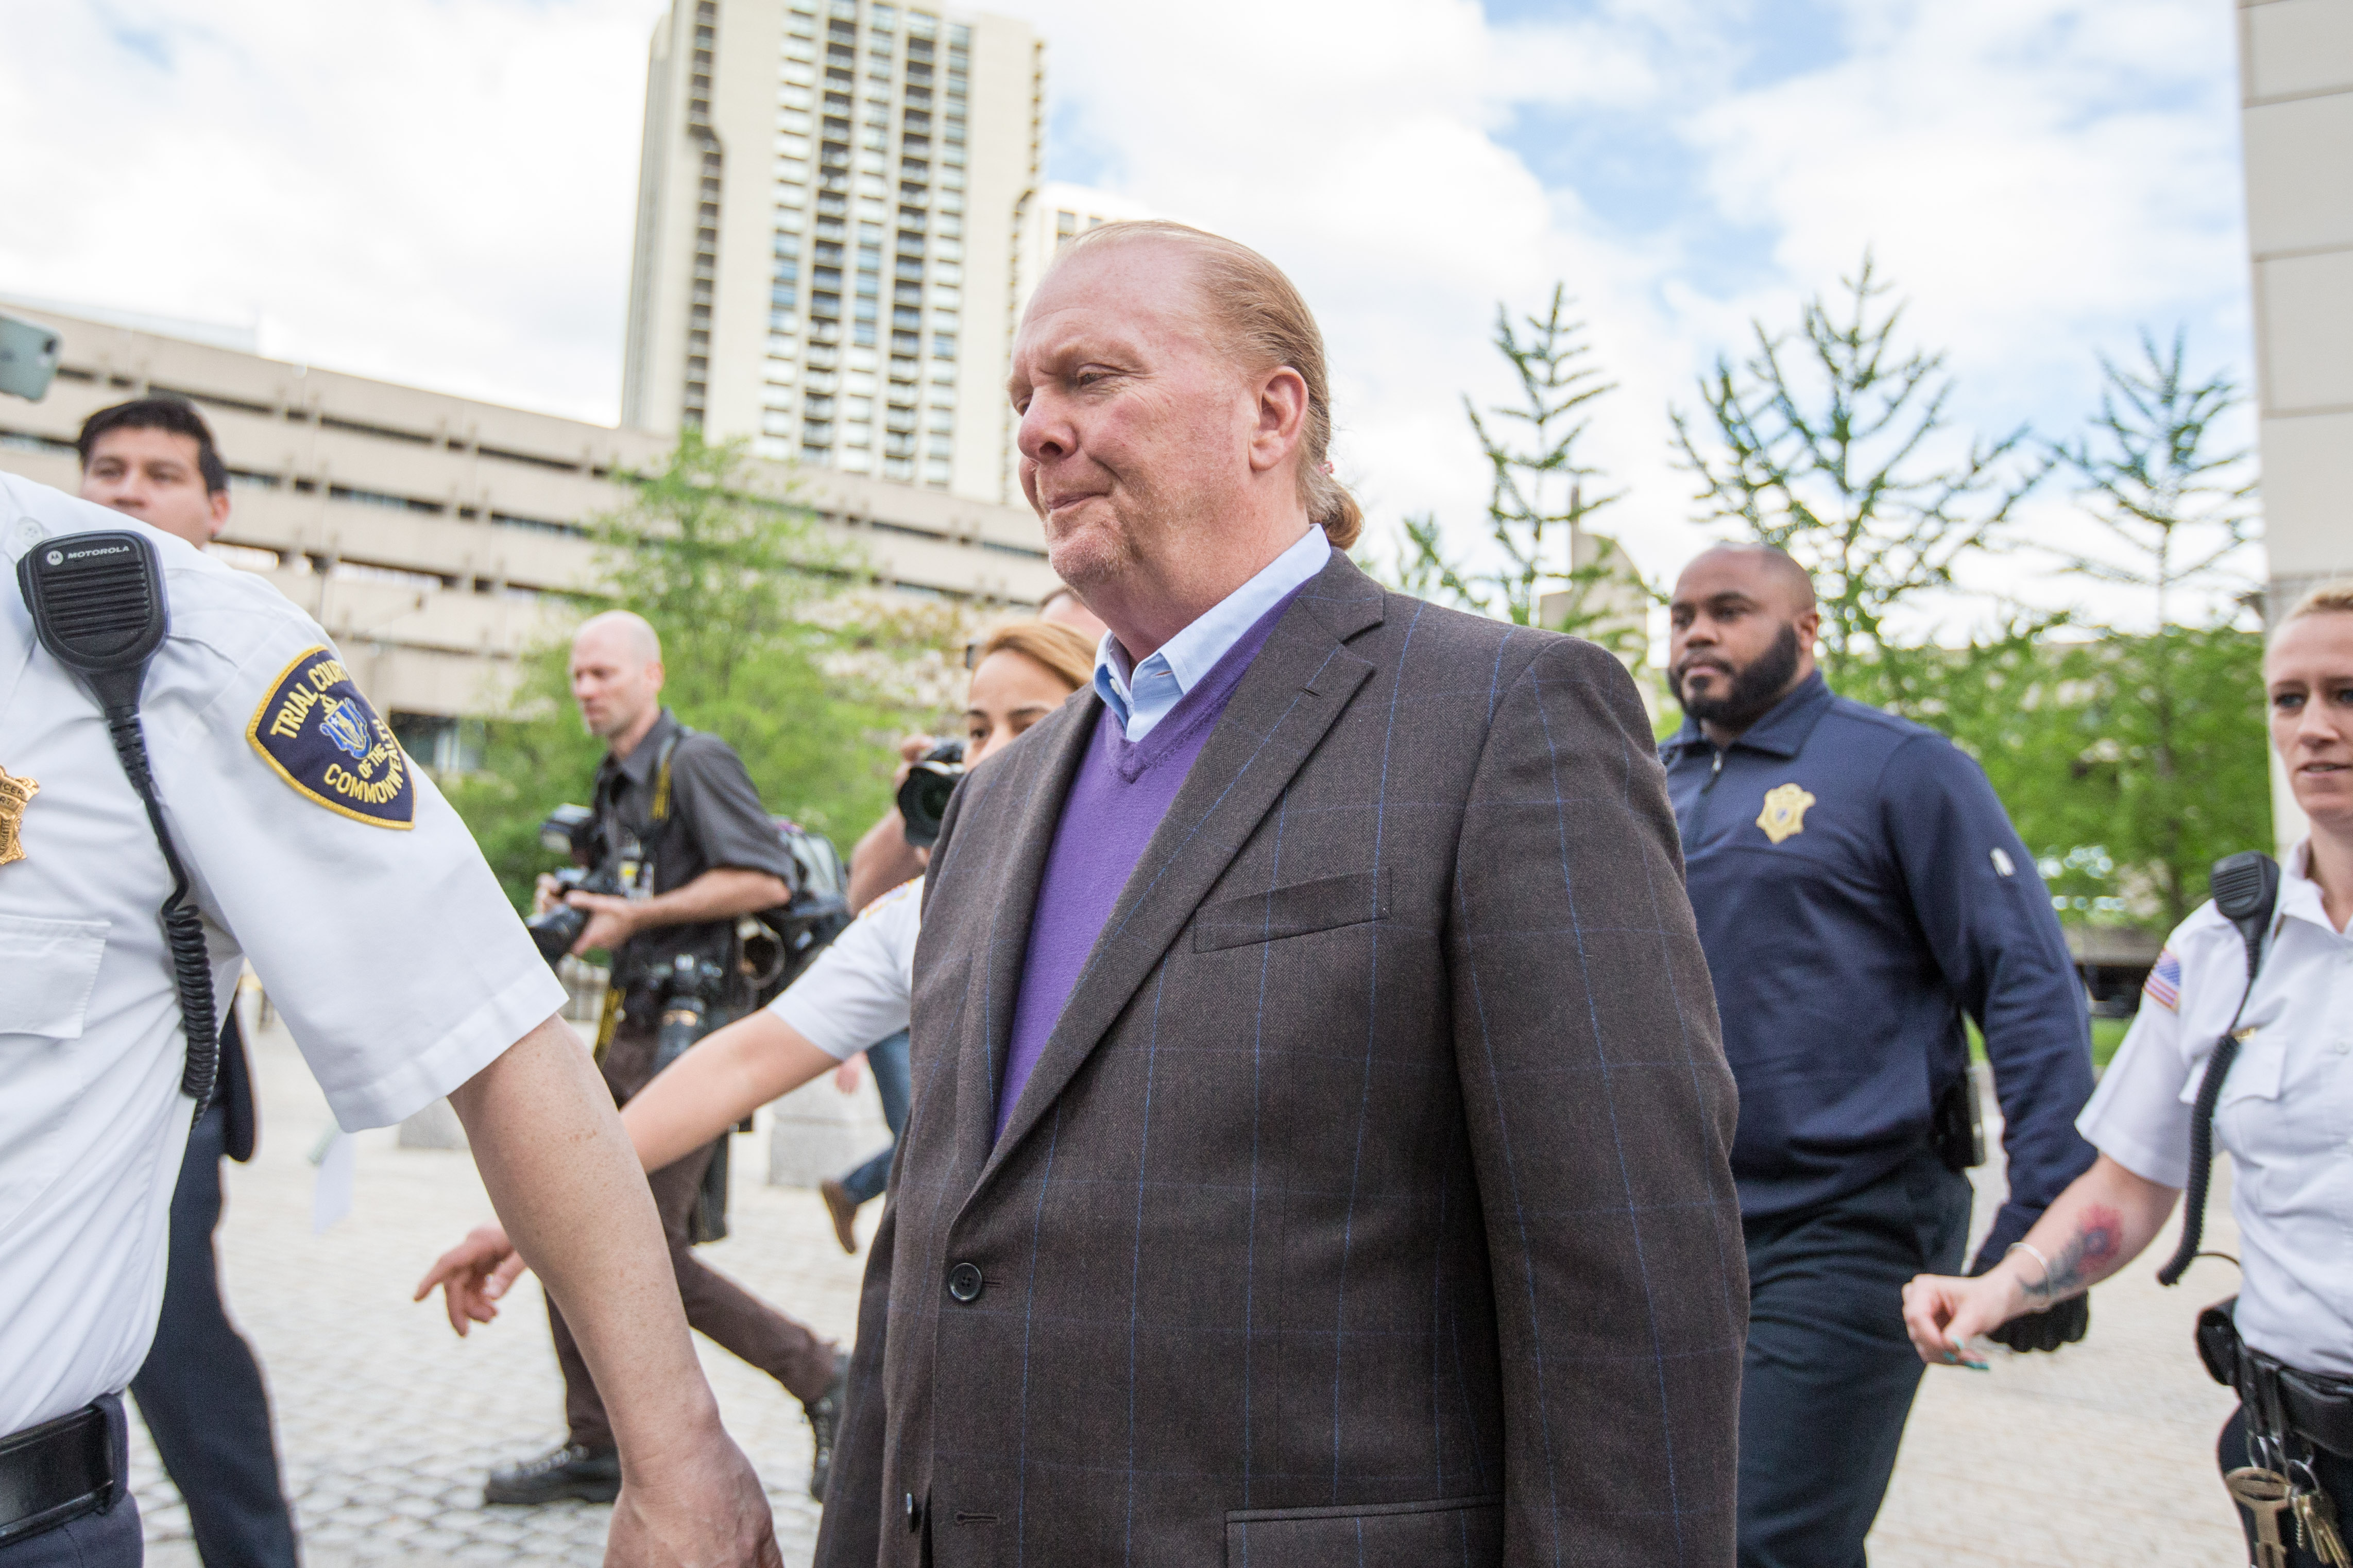 Celebrity chef Mario Batali leaves Boston Municipal Court following an arraingment on a charge of indecent assault and battery in connection with a 2017 incident at a Back Bay restaurant on May 24, 2019 in Boston, Massachusetts.